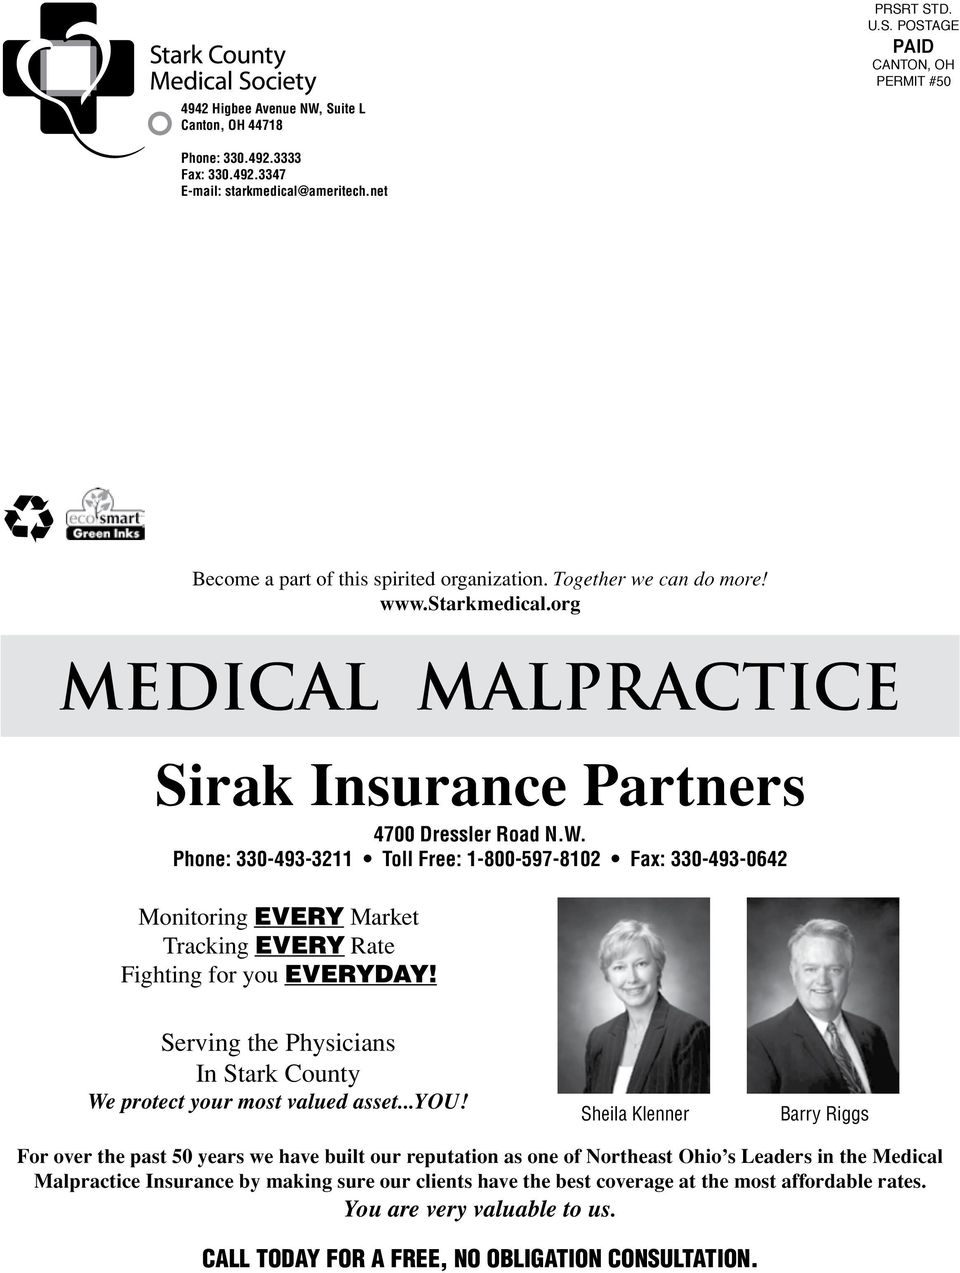 org Fighting for you EVERYDAY medical malpractice In Stark County For over the past 50 years we have built our reputation as one of Northeast Ohio s Leaders Medical Malpractice Insurance by making